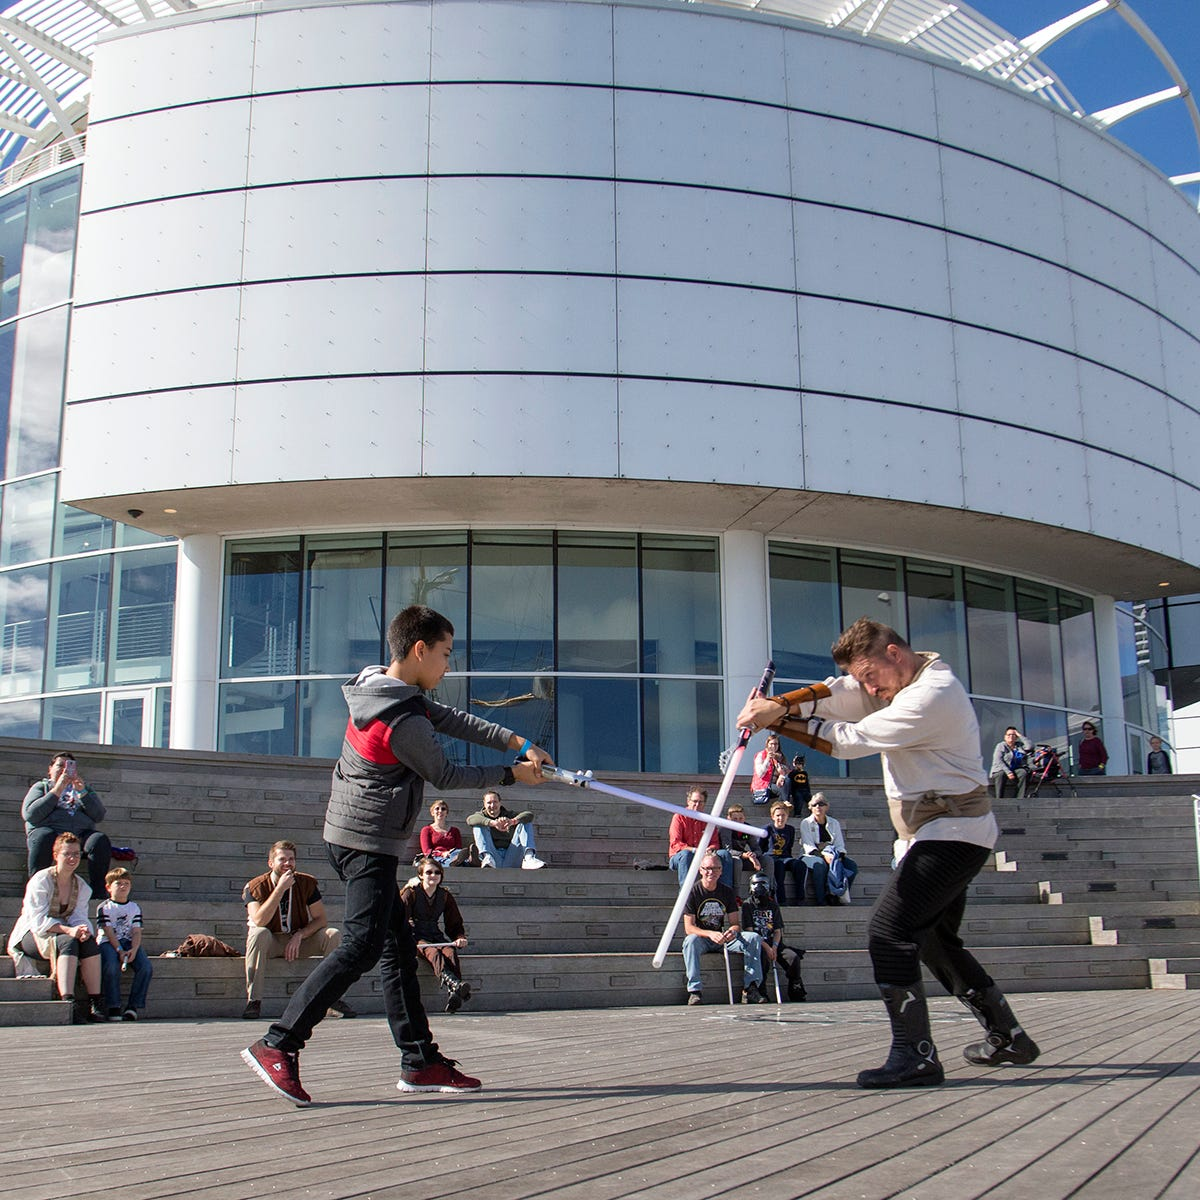 There's plenty to learn at Discovery World on Sci-Fi Family Day, such as how to have lightsaber battles from E.D.G.E. of Orion.